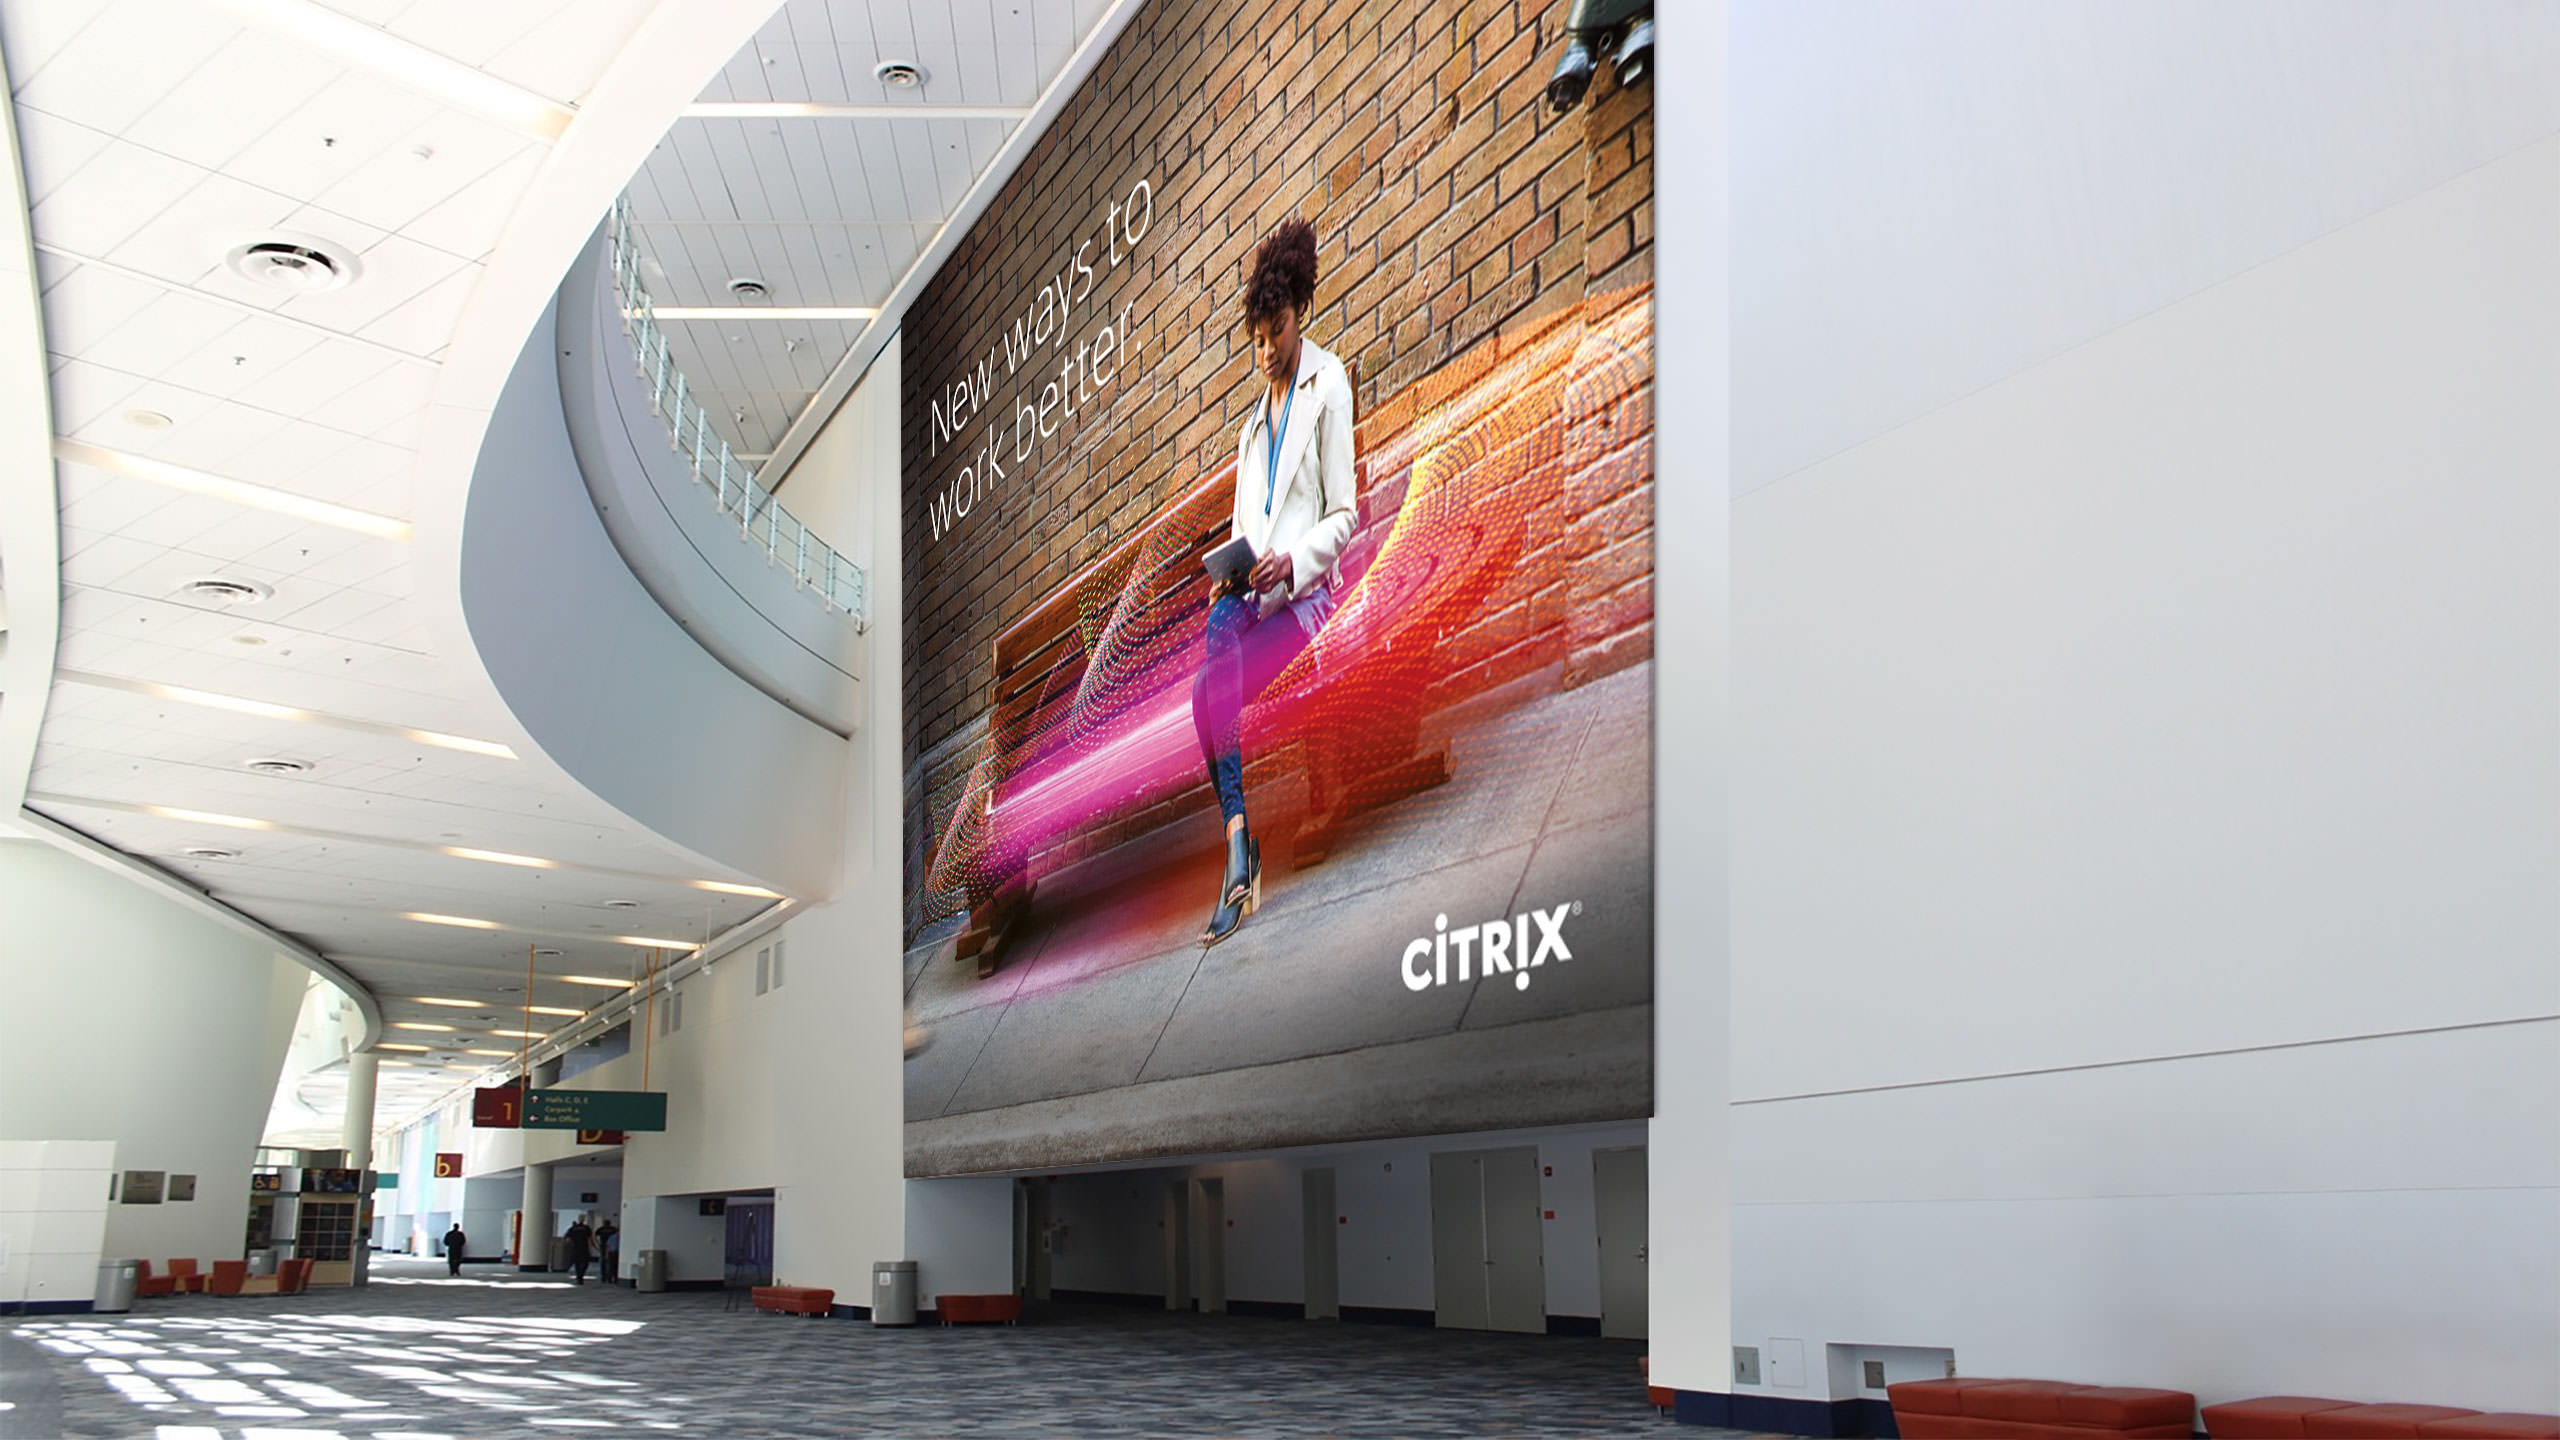 Citrix Brand Campaign displayed in a convention hall